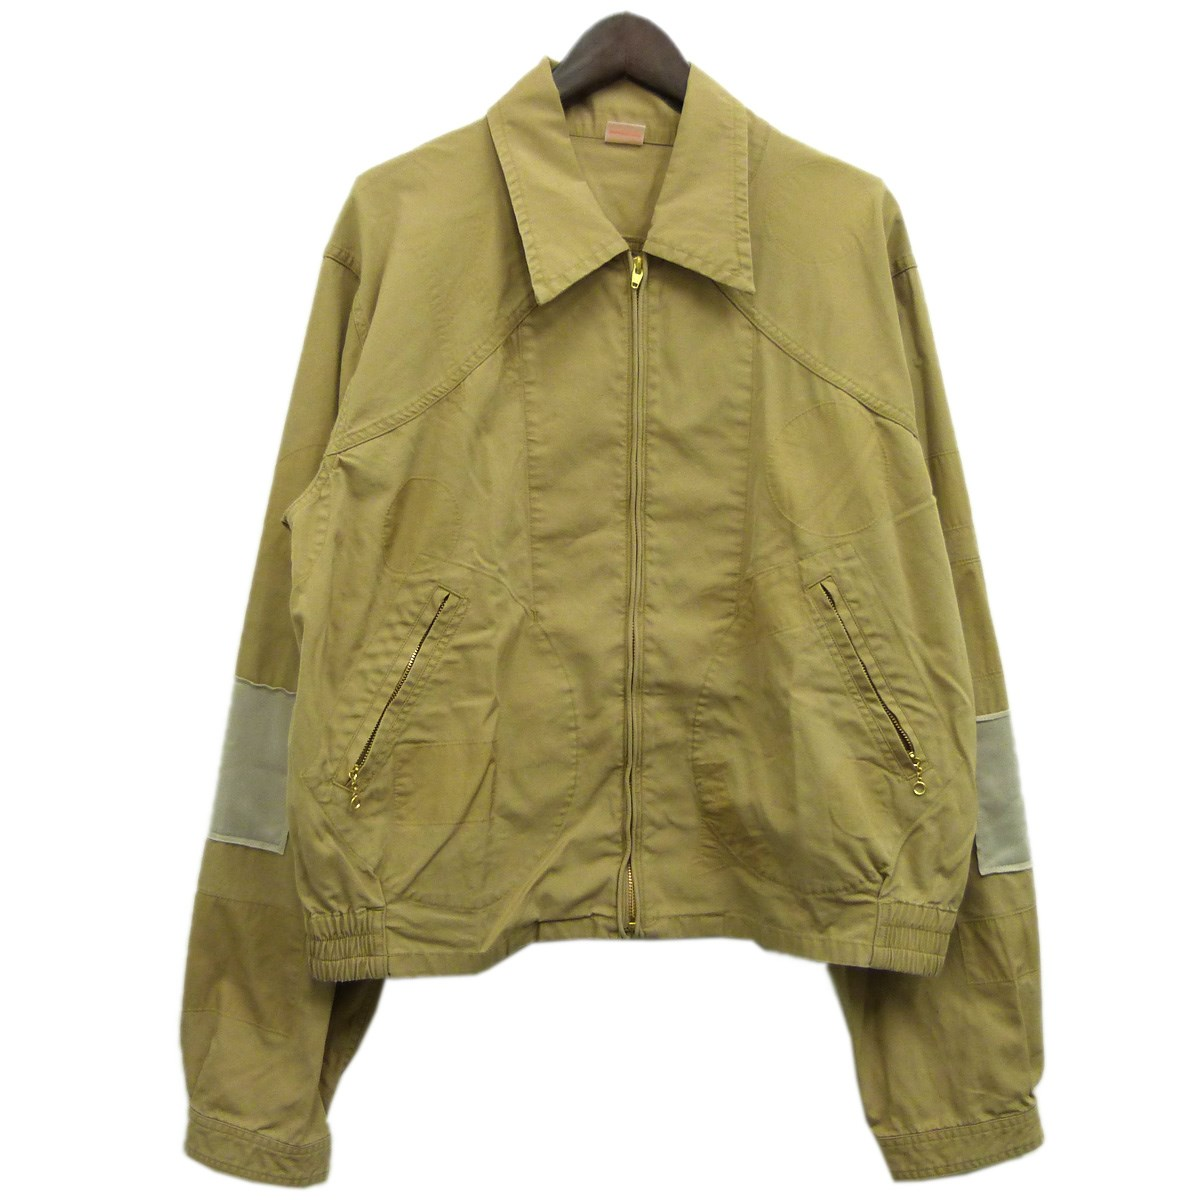 【中古】MAISON EUREKA19SS「BURBERRY CLOTH WORK JACKET」ワークジャケット ベージュ サイズ:L